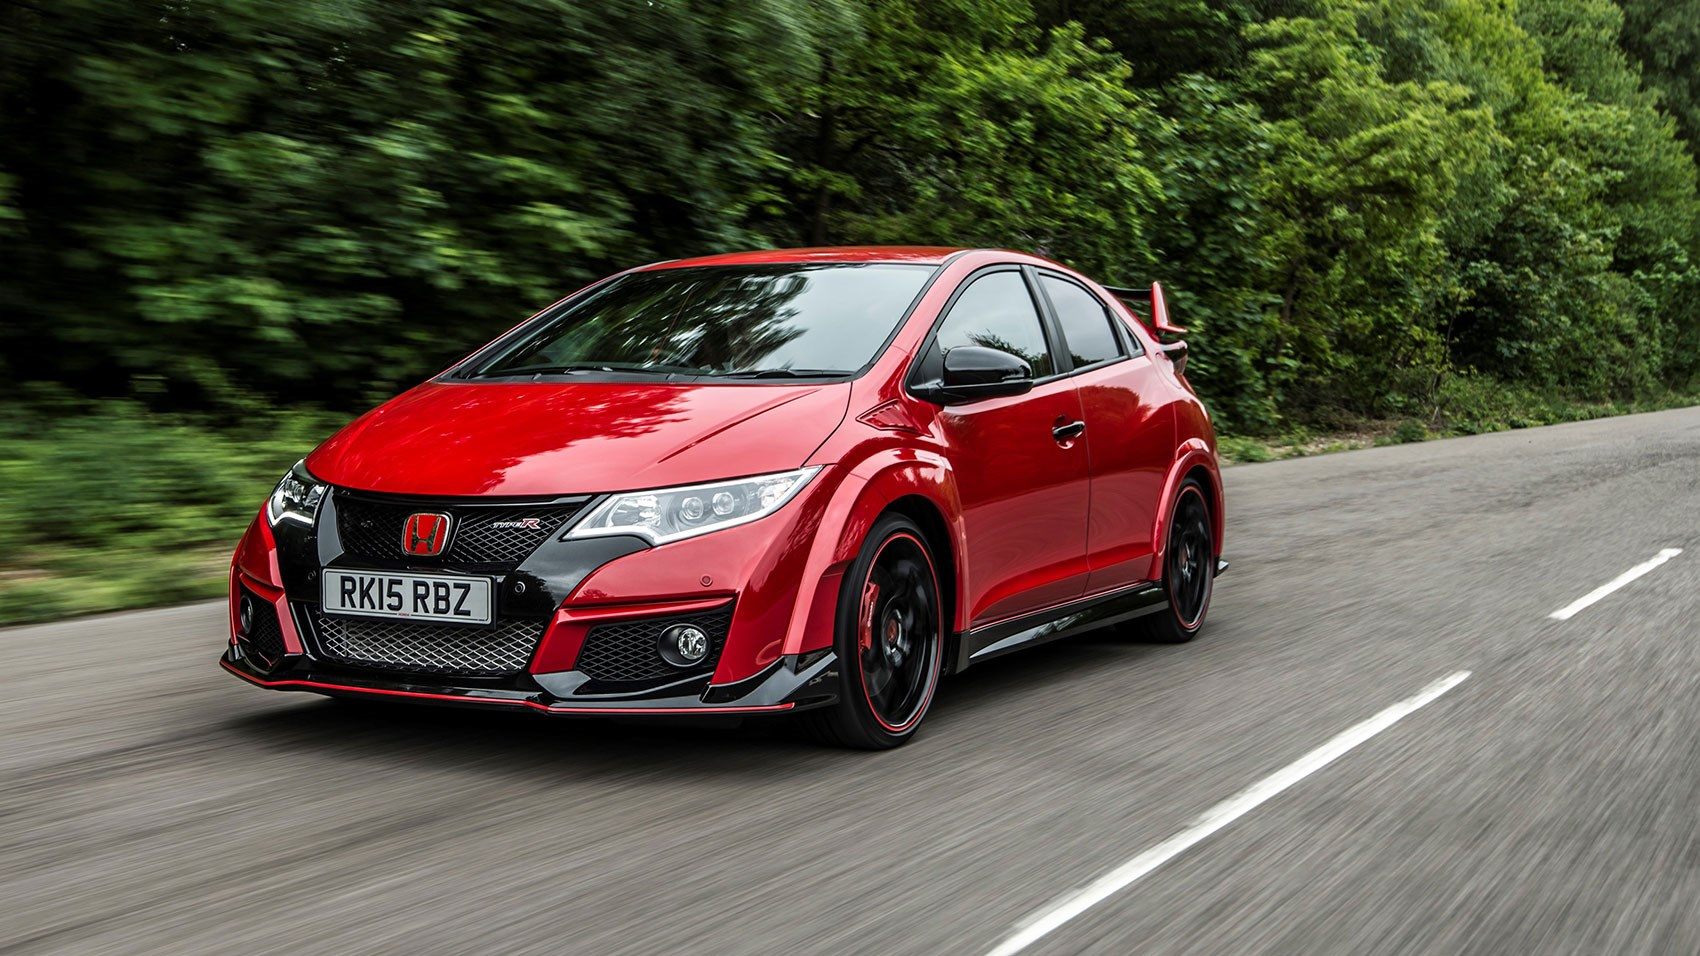 honda civic type r 2015 review by car magazine. Black Bedroom Furniture Sets. Home Design Ideas